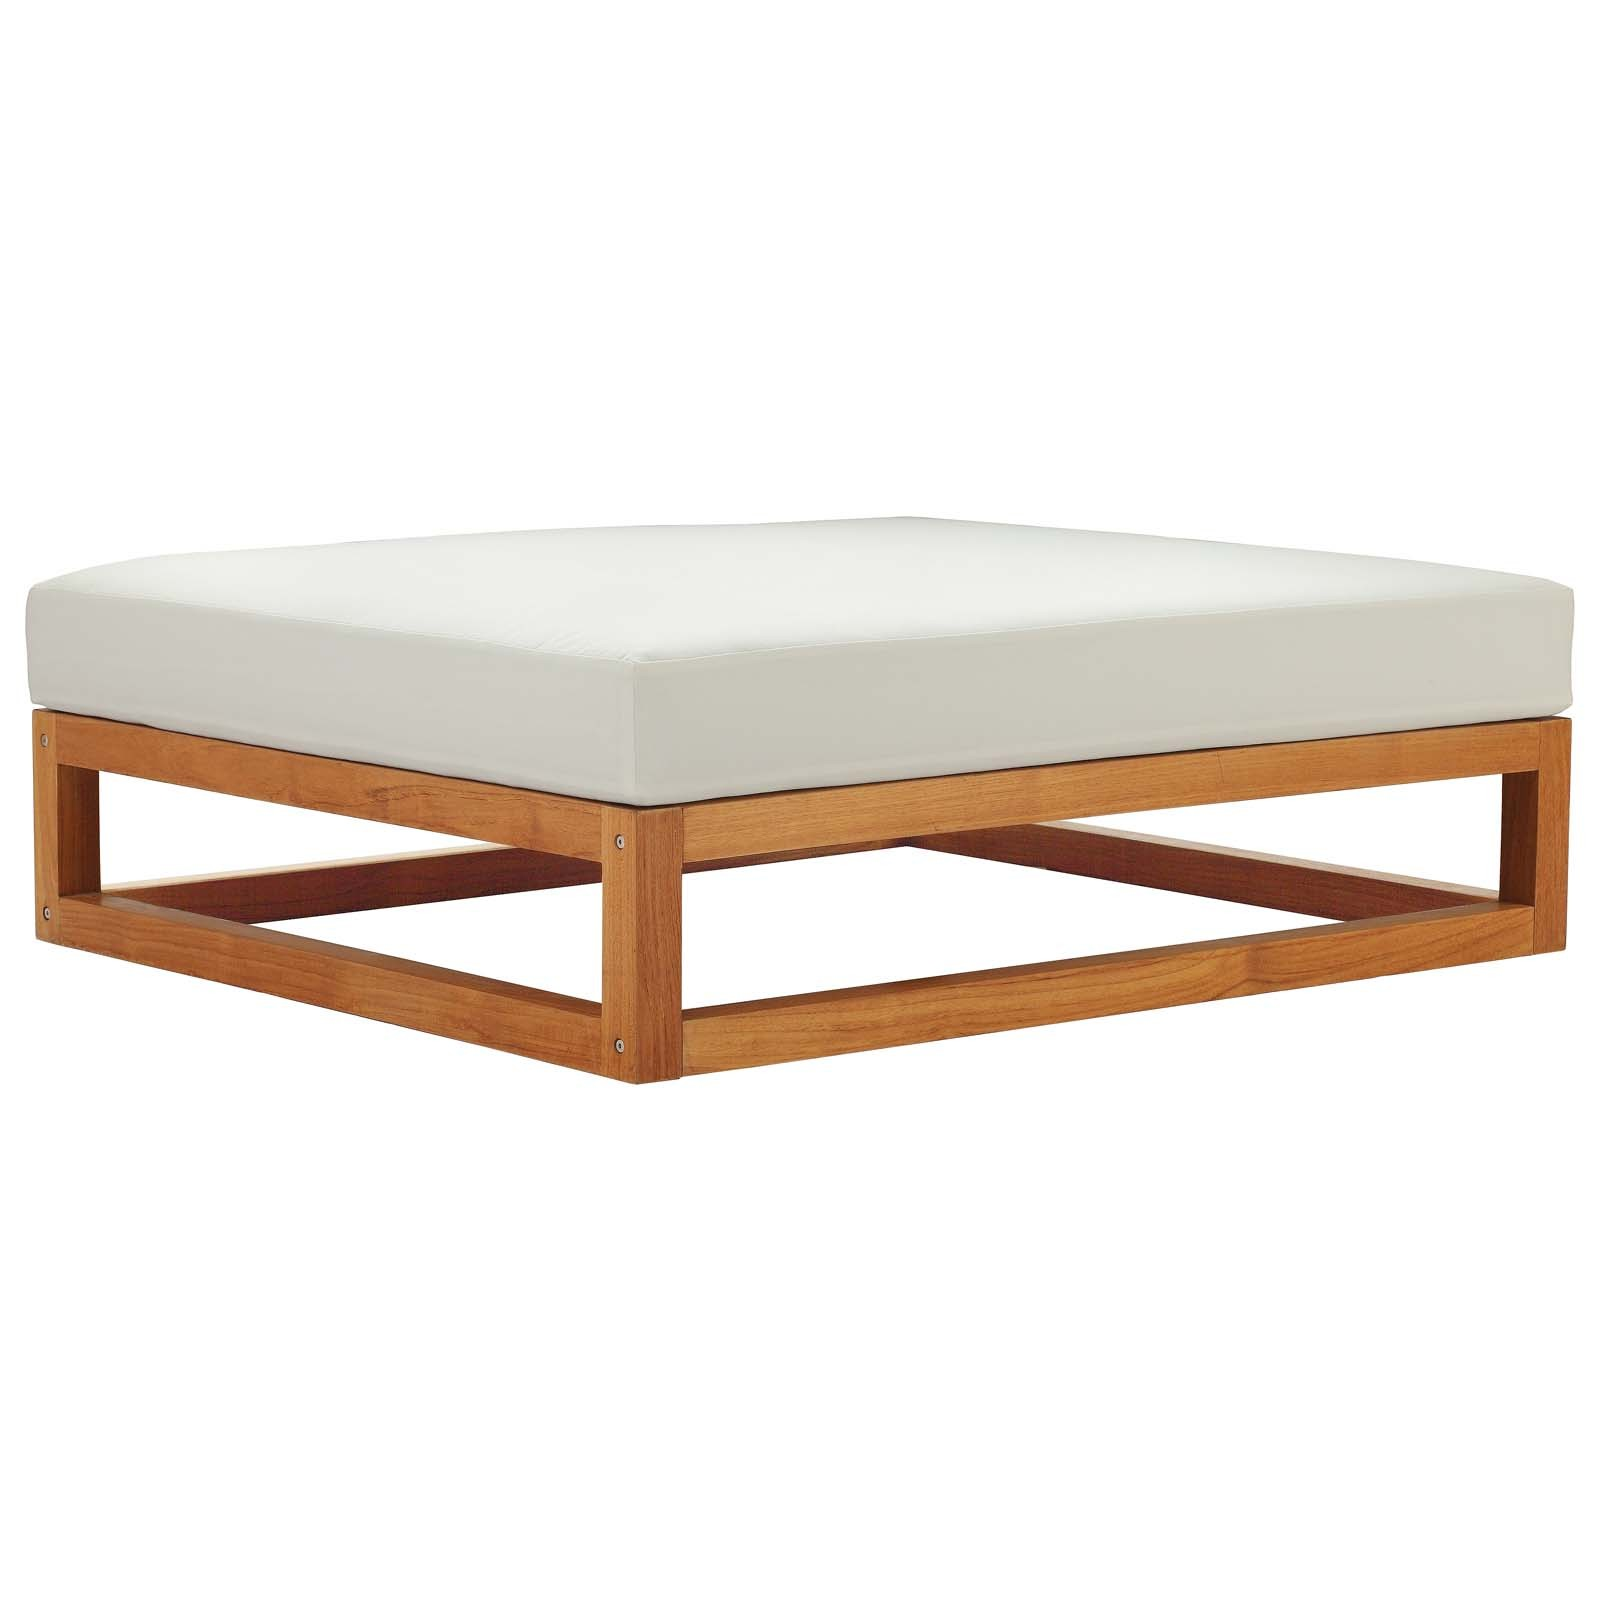 Newbury Outdoor Patio Premium Grade A Teak Wood Ottoman in Natural White